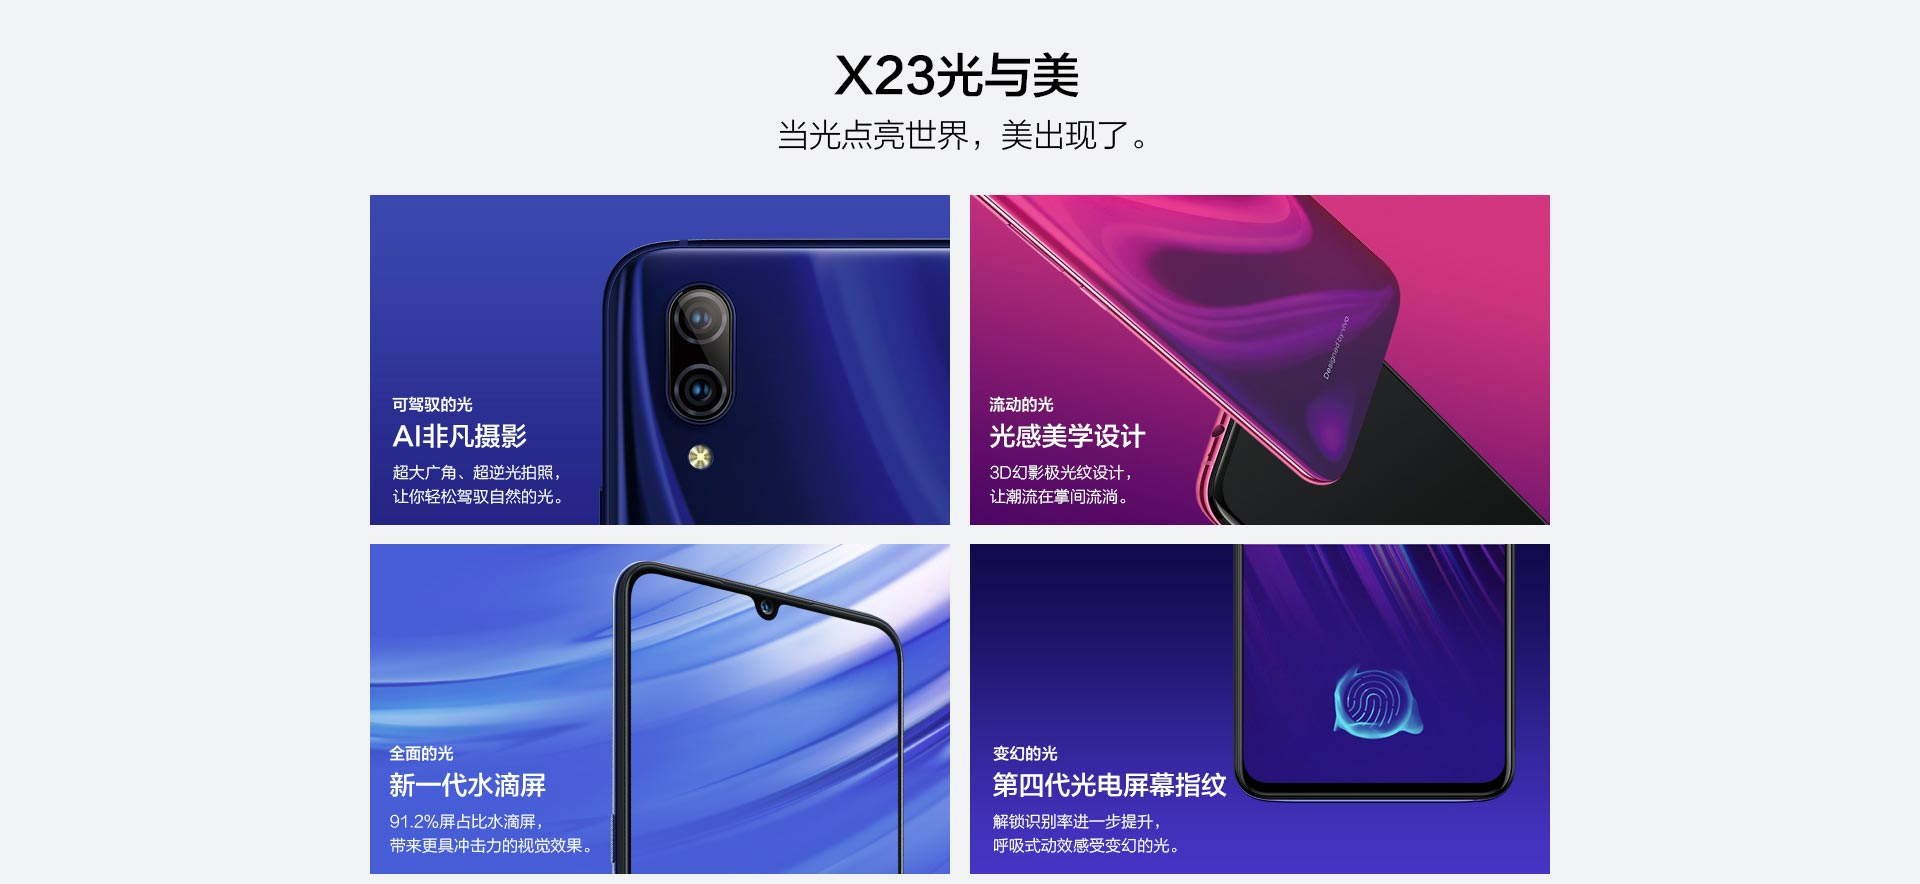 - 3bcae7ee 6e39 4bcd 9859 7795d61b9f3a 1 - Vivo X23 Announced with Waterdrop Notch Display, Improved In-display Fingerprint Scanner